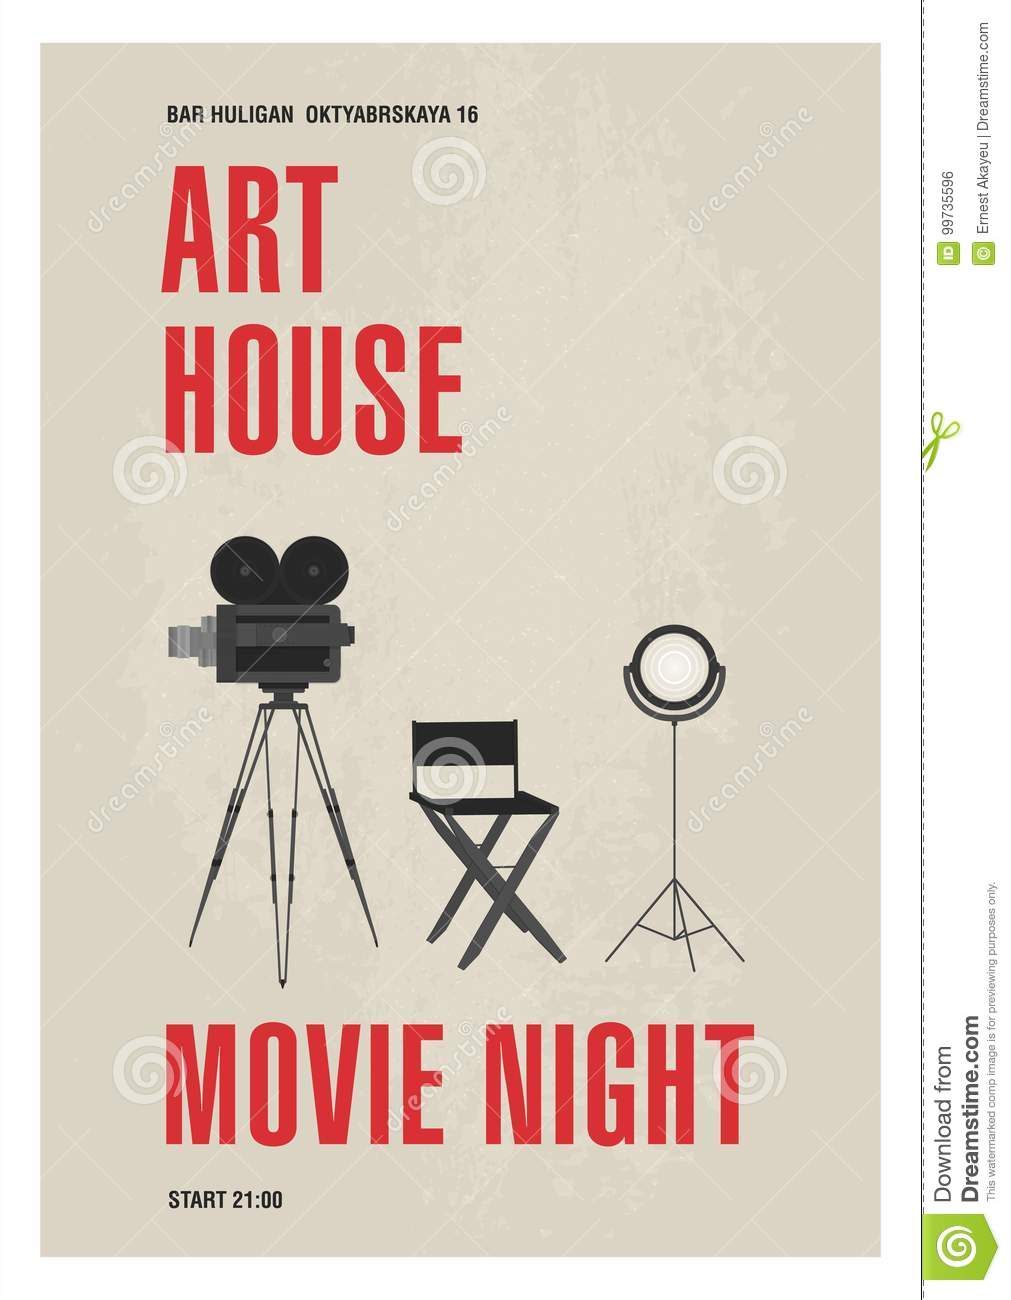 Minimalistic poster template for art house movie night with film camera standing on tripod, studio lamp and director